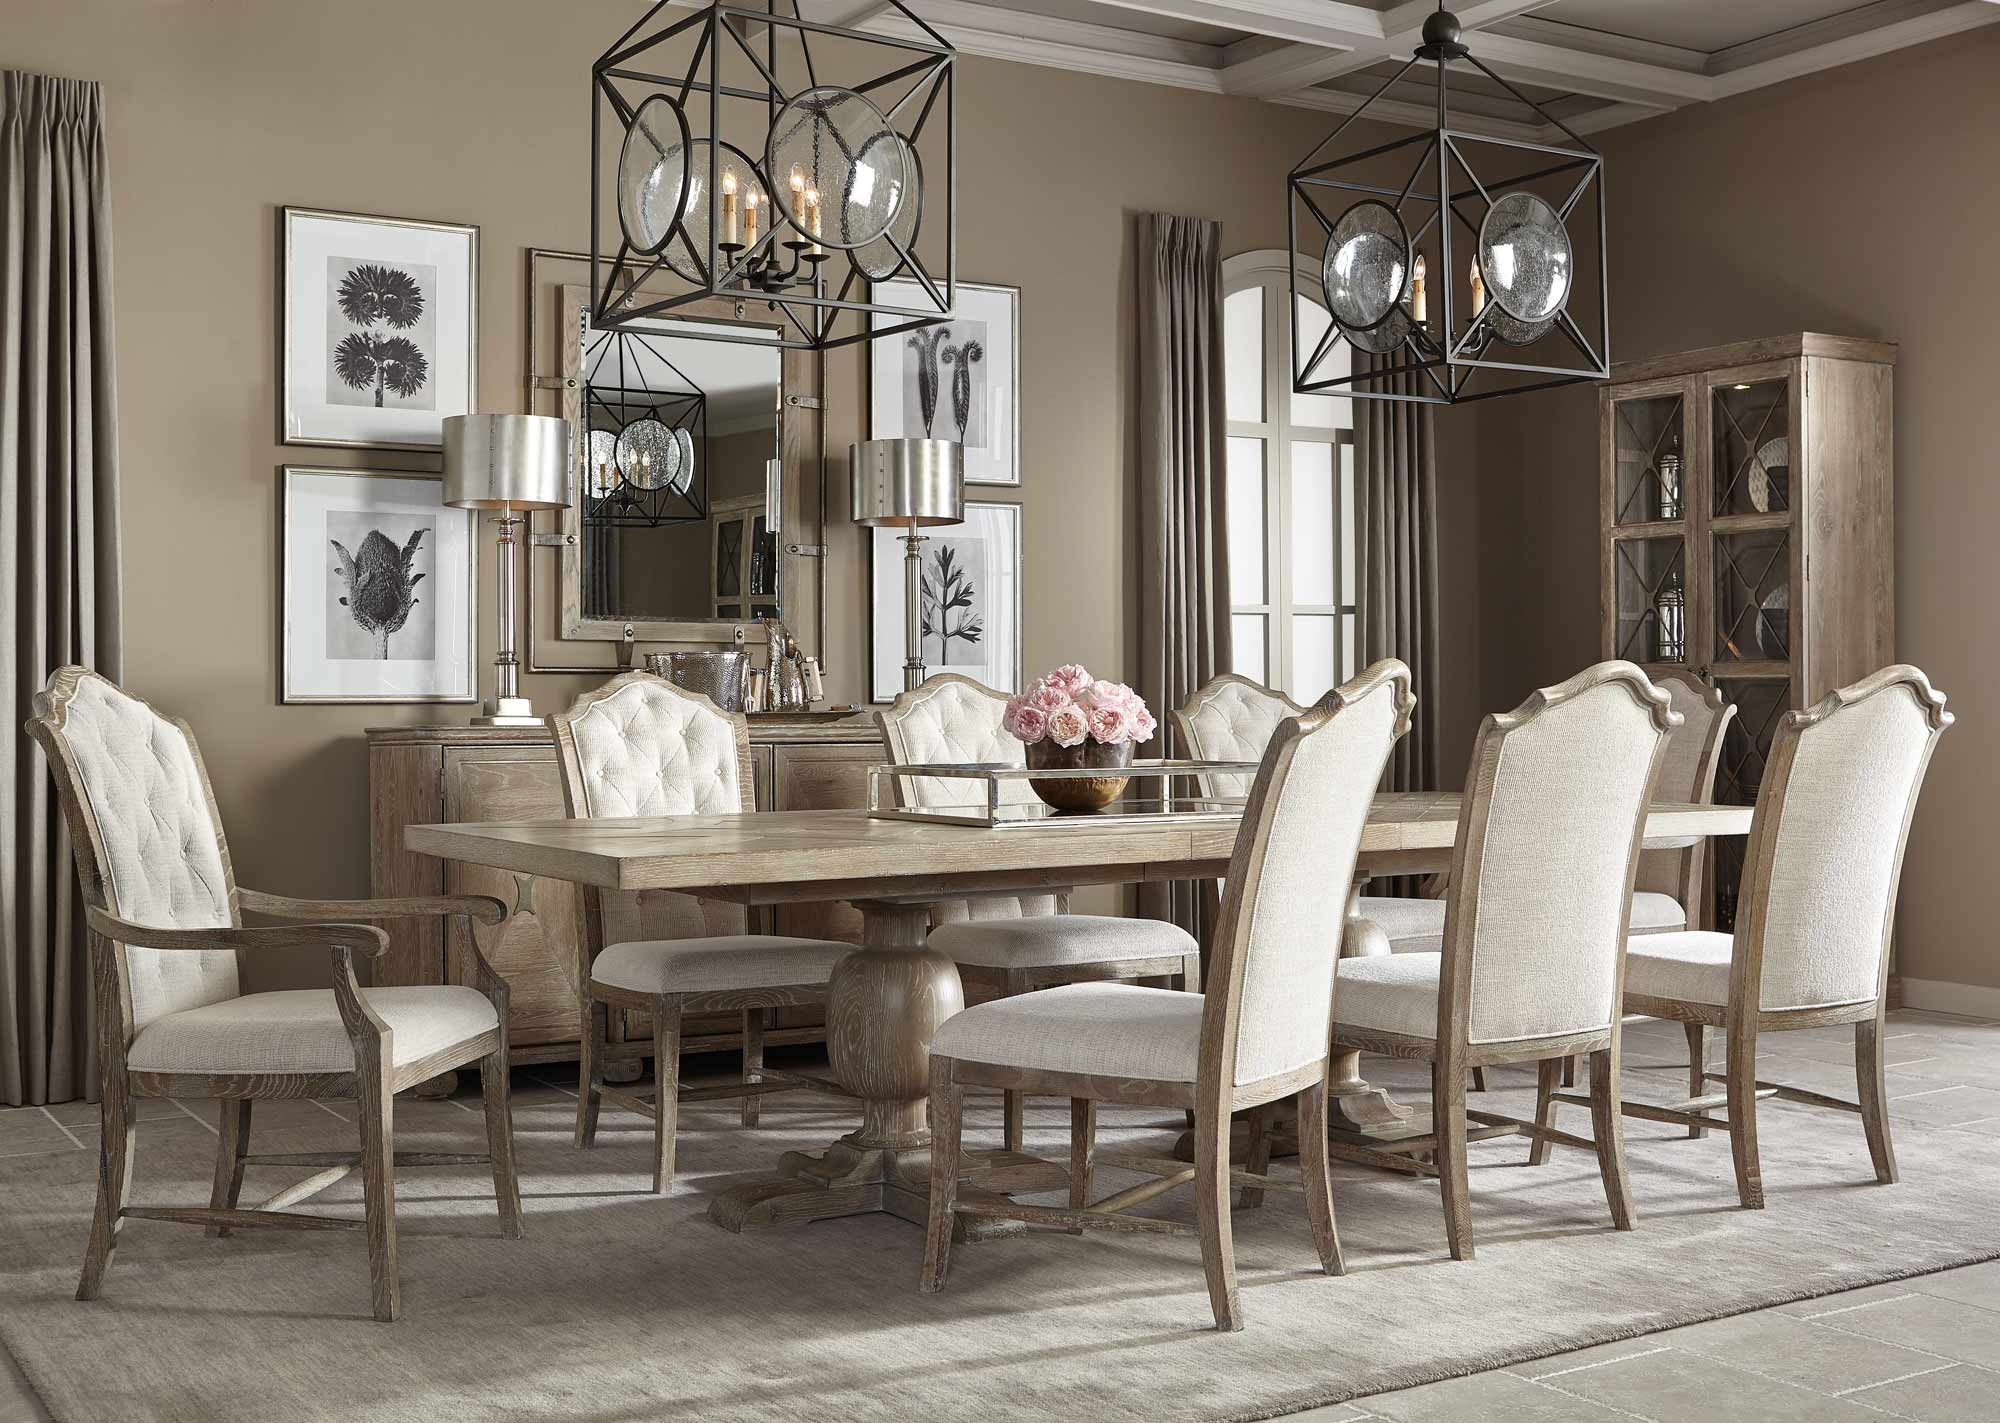 Stylish New Collections by Bernhardt Furniture - Goods ...